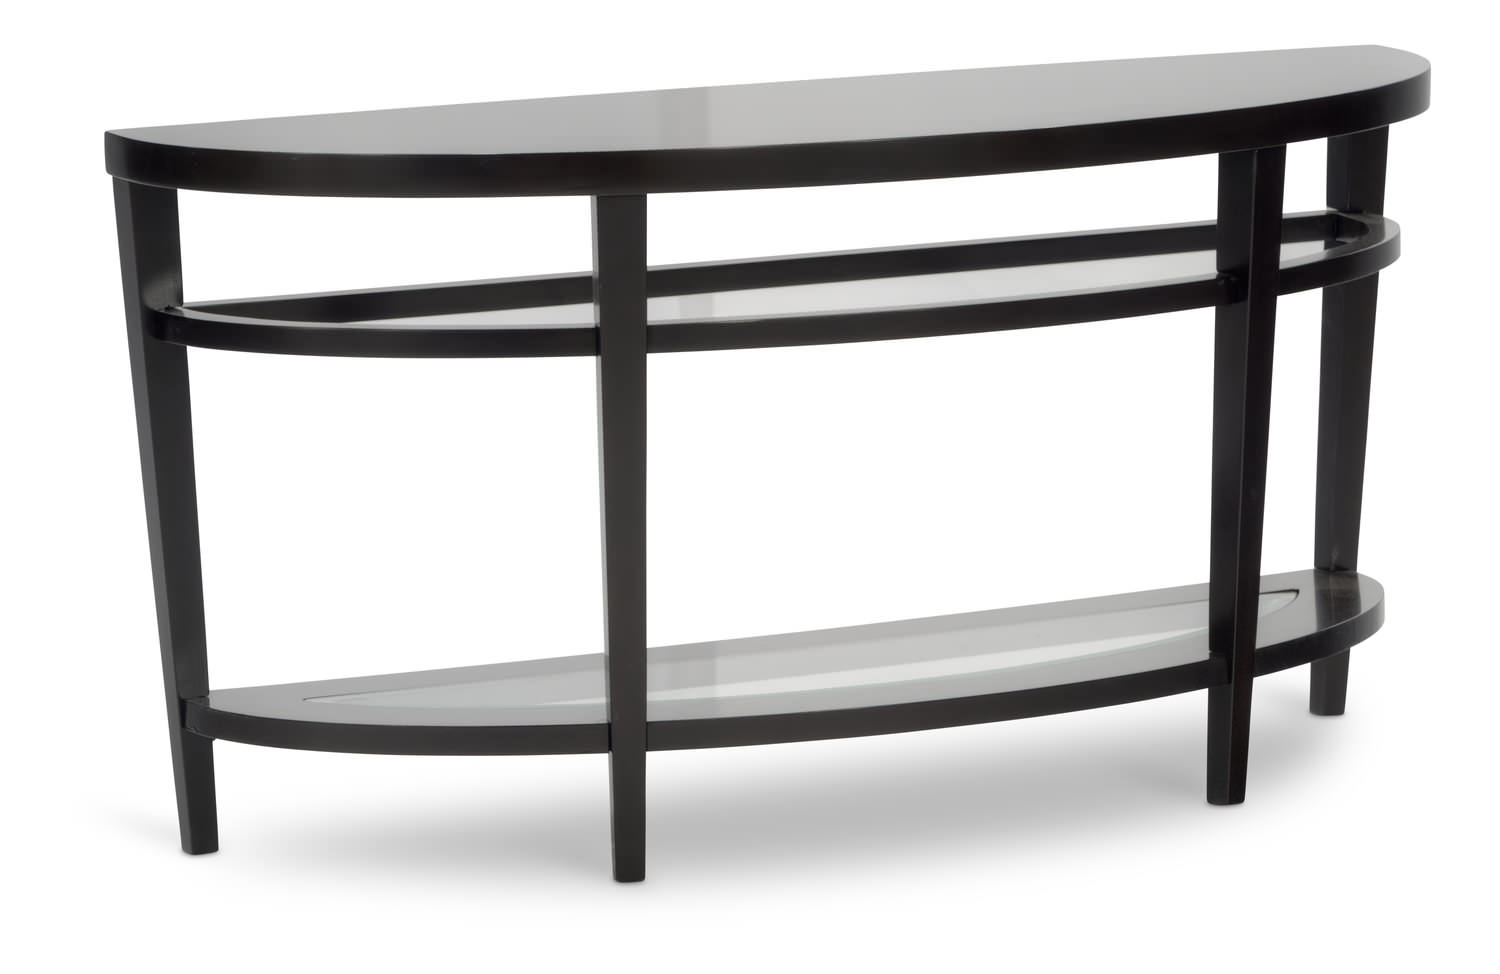 Urbana sofa table hom furniture for Table urbana but